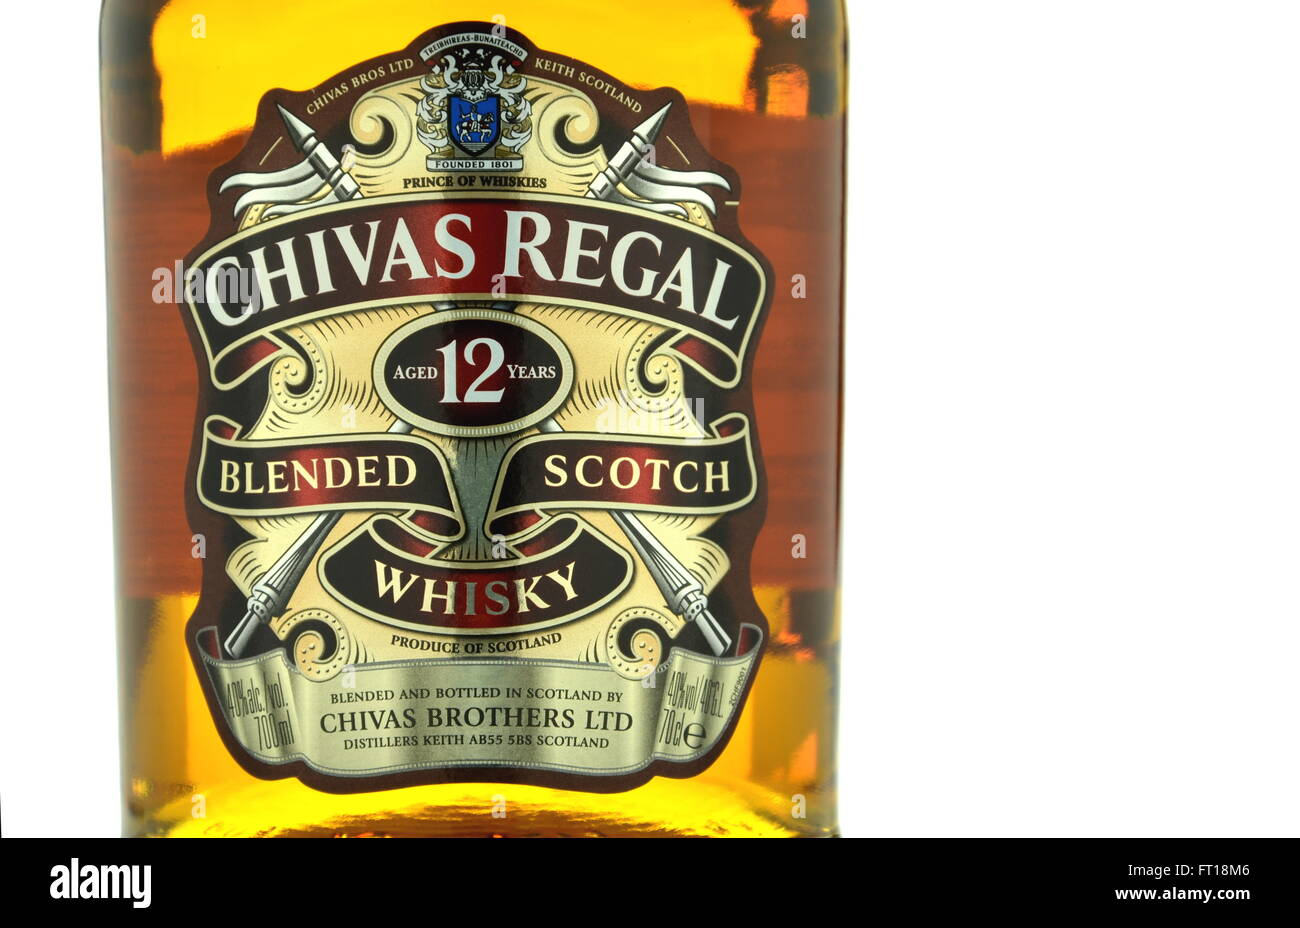 Chivas regal whiskey isolated on white background stock photo chivas regal whiskey isolated on white background voltagebd